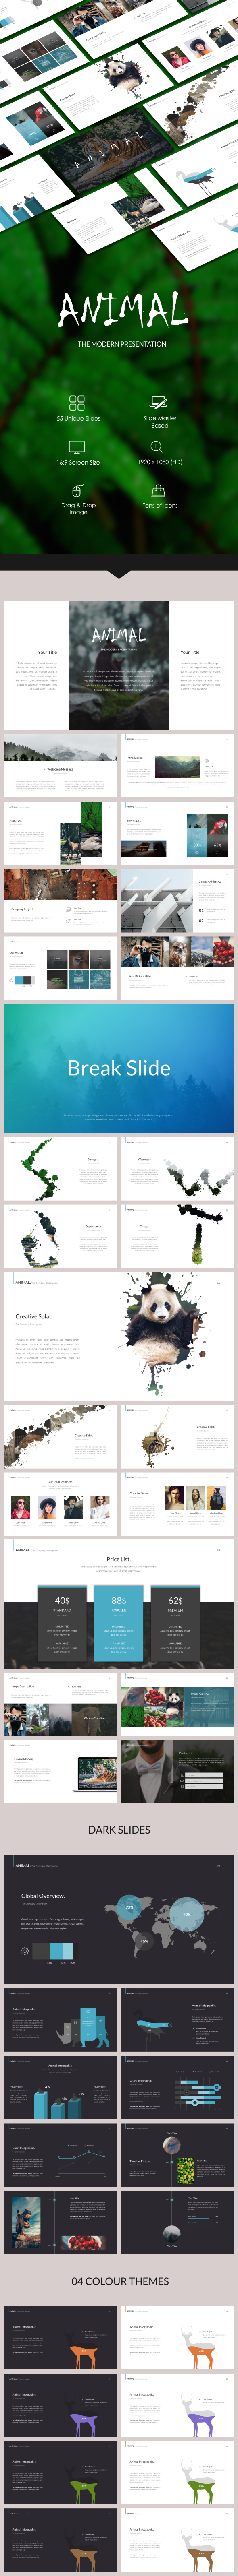 Animal powerpoint template by presentakit graphicriver animal powerpoint template business powerpoint templates alramifo Choice Image